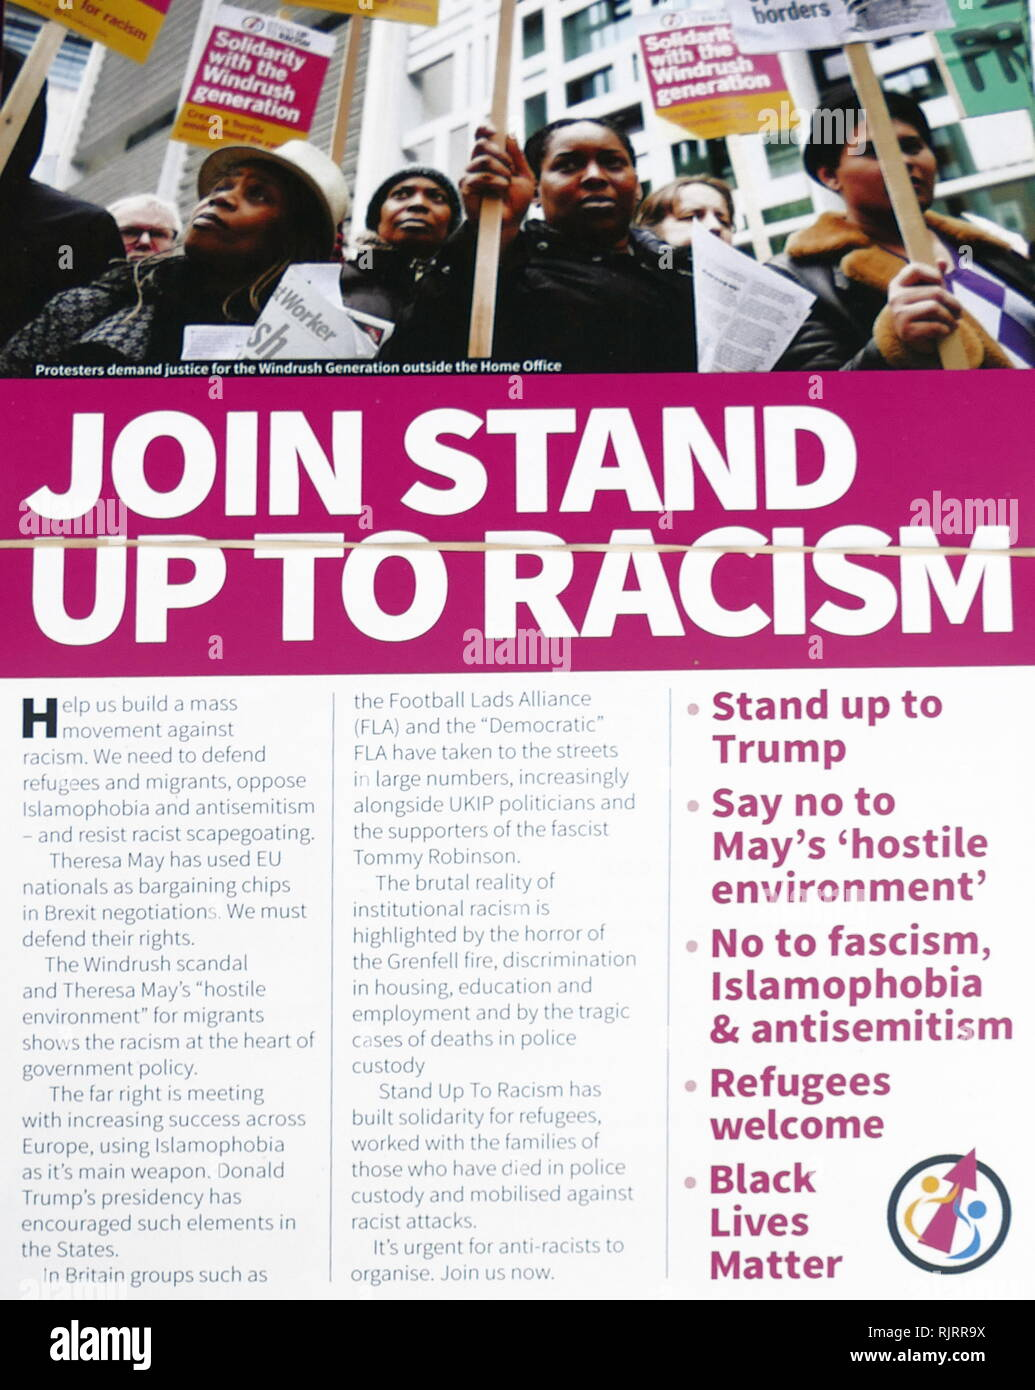 Leaflet published against, Tommy Robinson, an English far-right activist, who co-founded and served as spokesman and leader of the English Defence League (EDL). - Stock Image